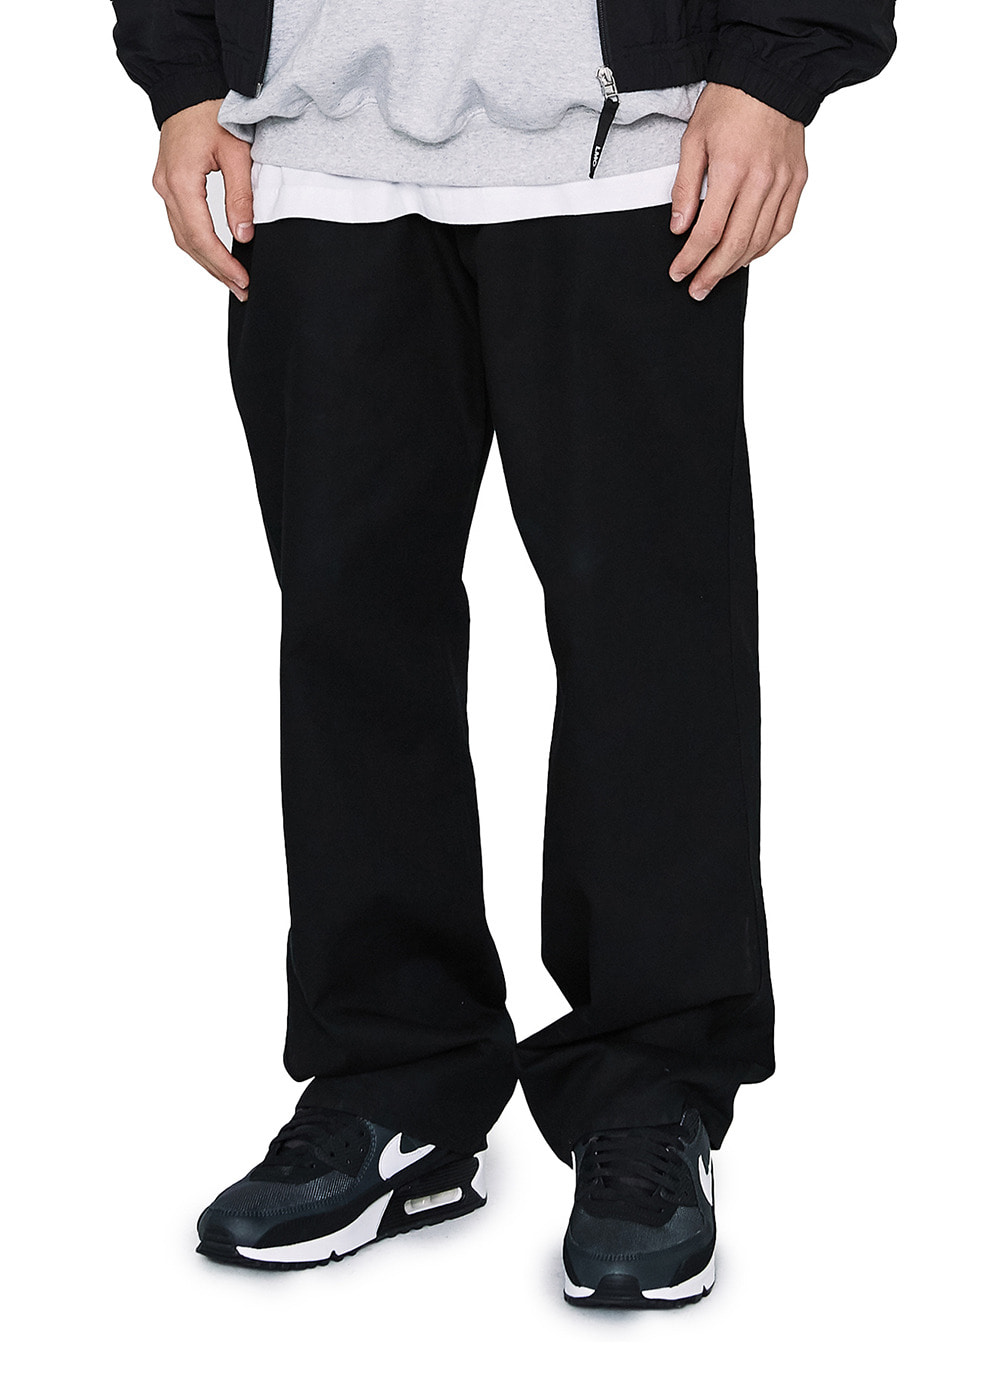 LMC BASIC FN CHINO PANTS black